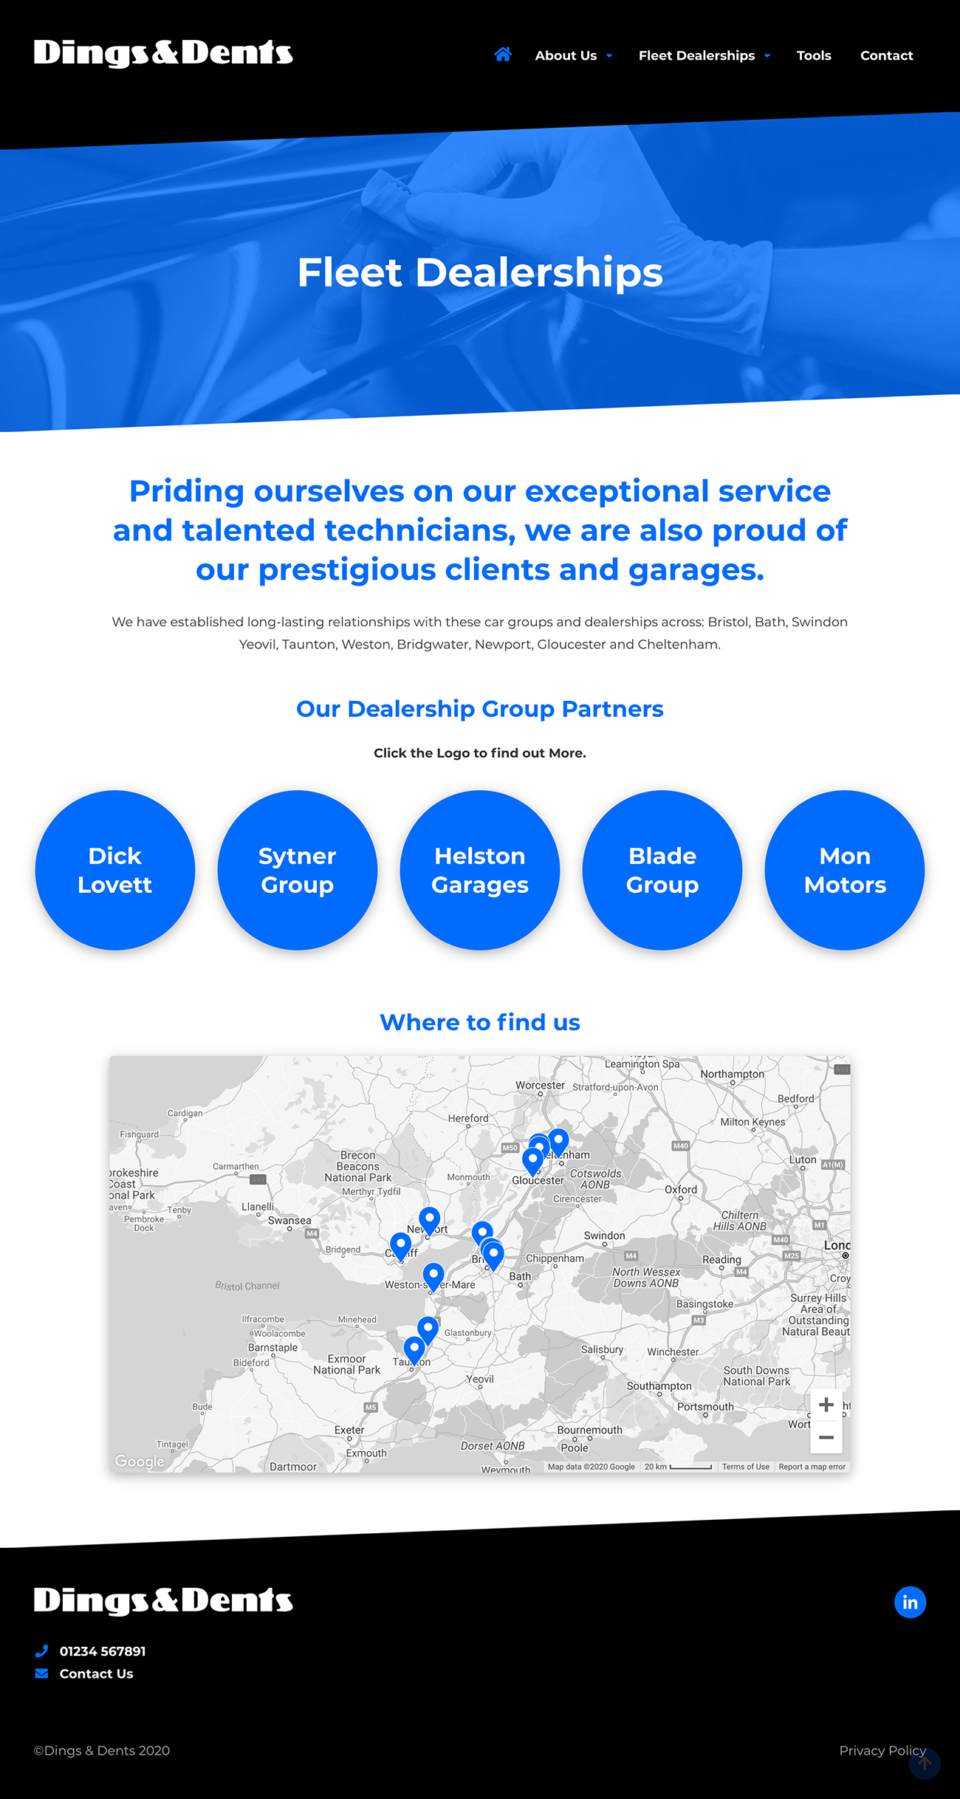 Dings & Dents - Fleet Page